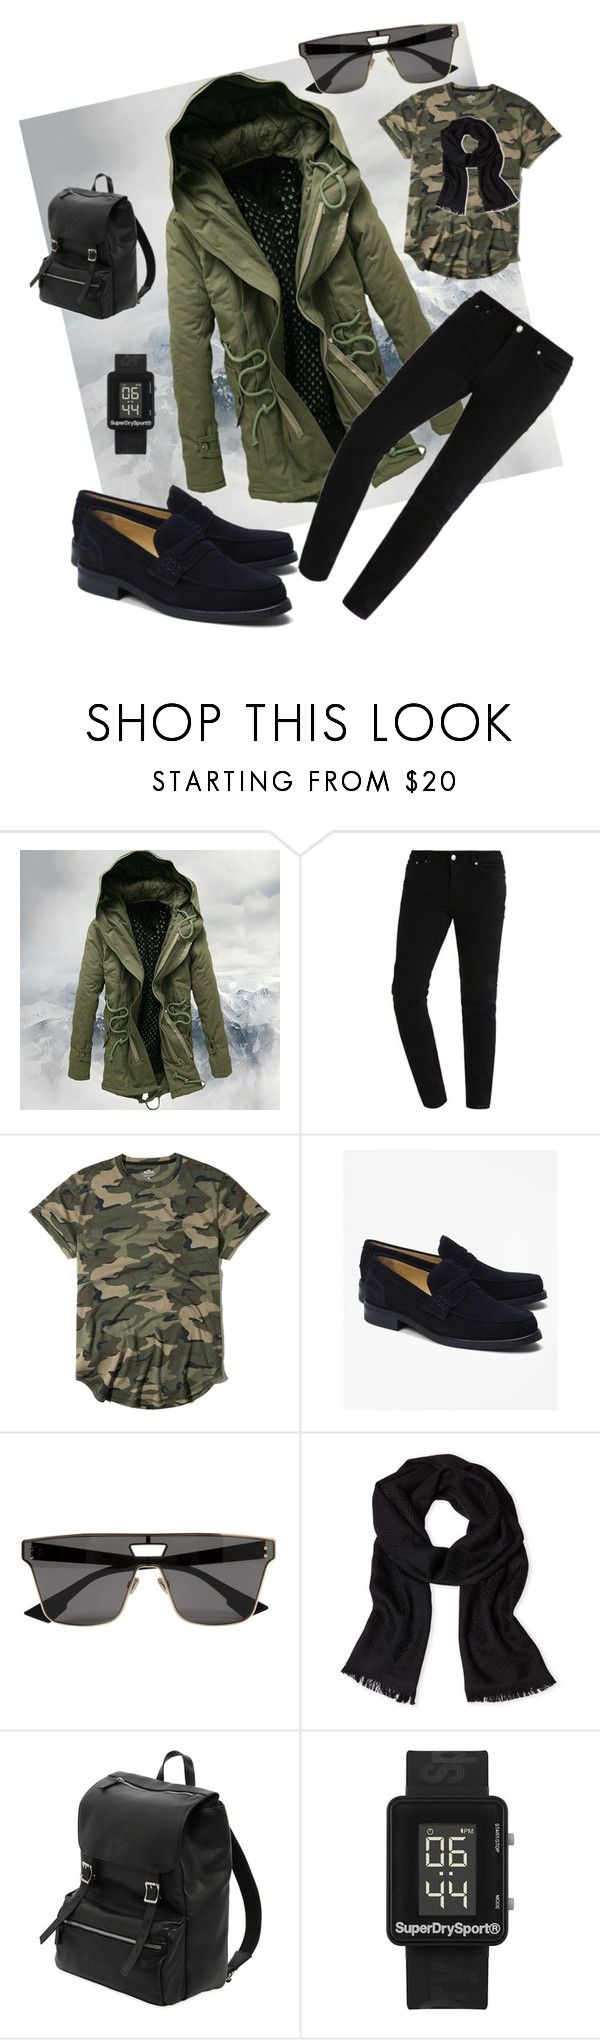 """""""Fall Look Men's"""" by harshal-singhai on Polyvore featuring Hollister Co., Brooks Brothers, Christian Dior, Versace, Invicta, Superdry, men's fashion and menswear"""